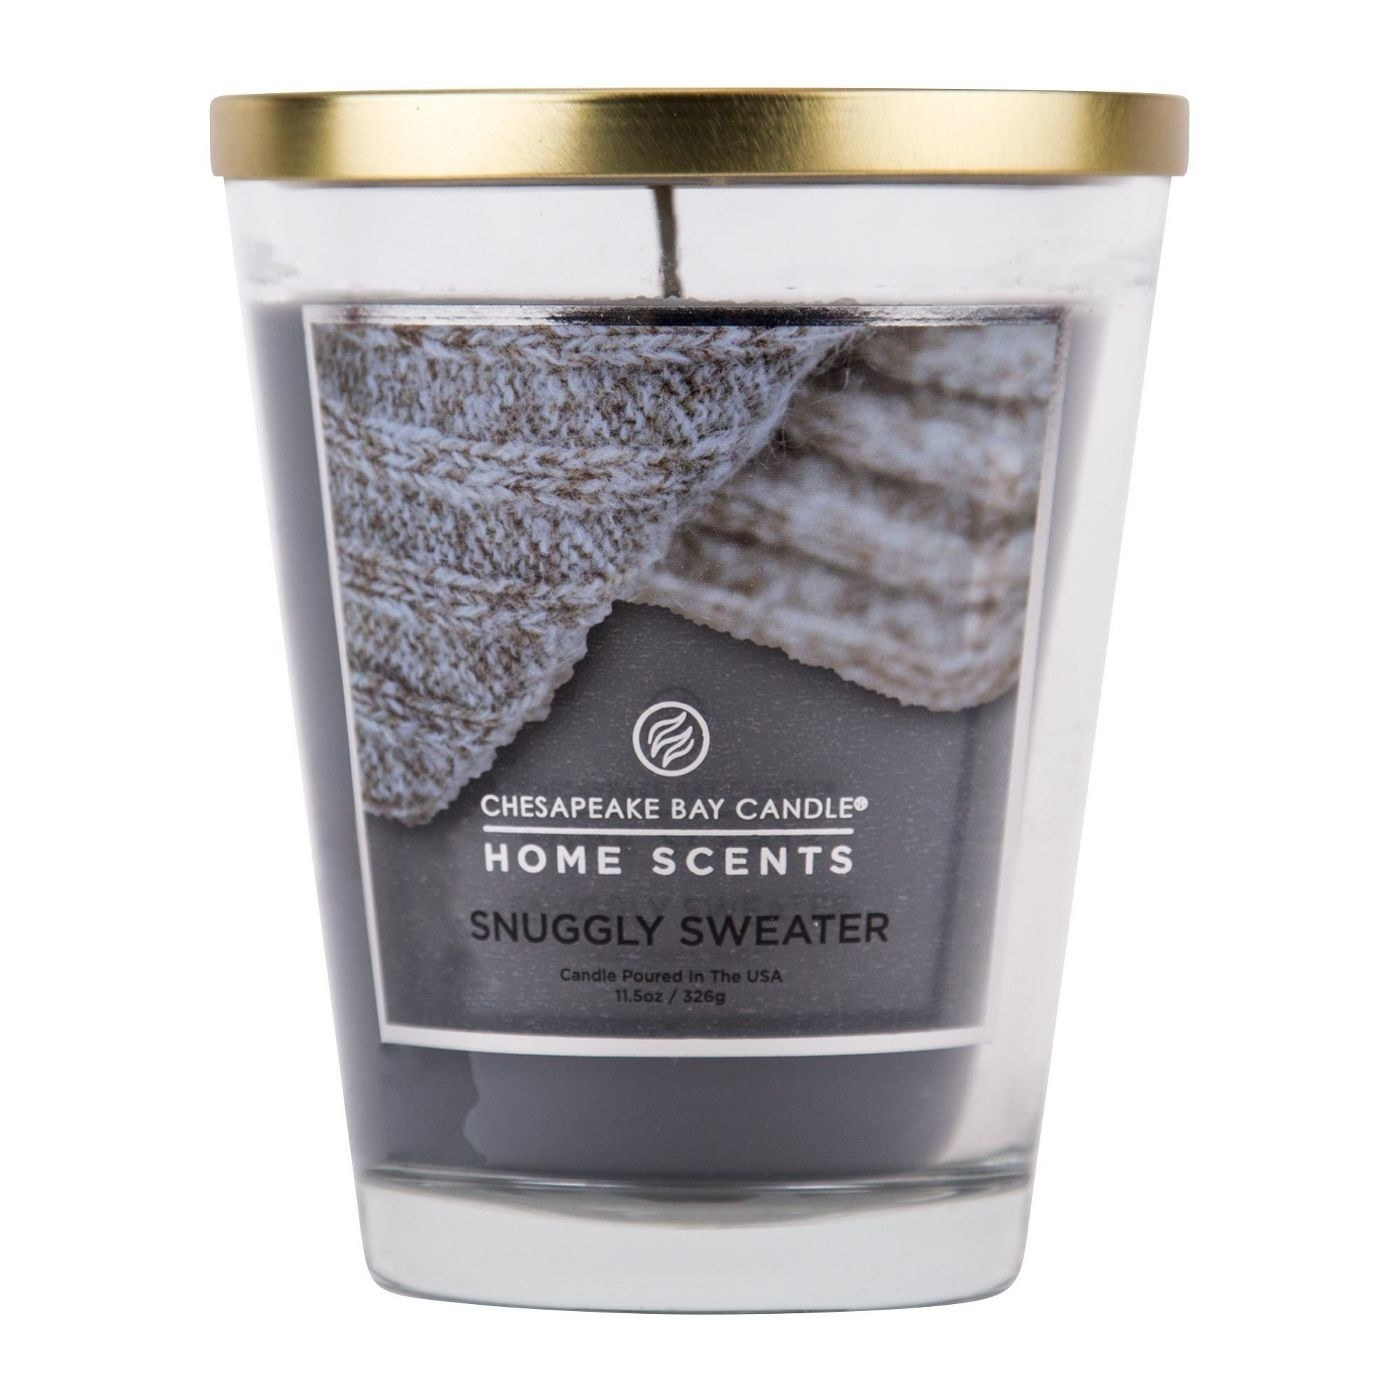 The grey sweater-themed candle